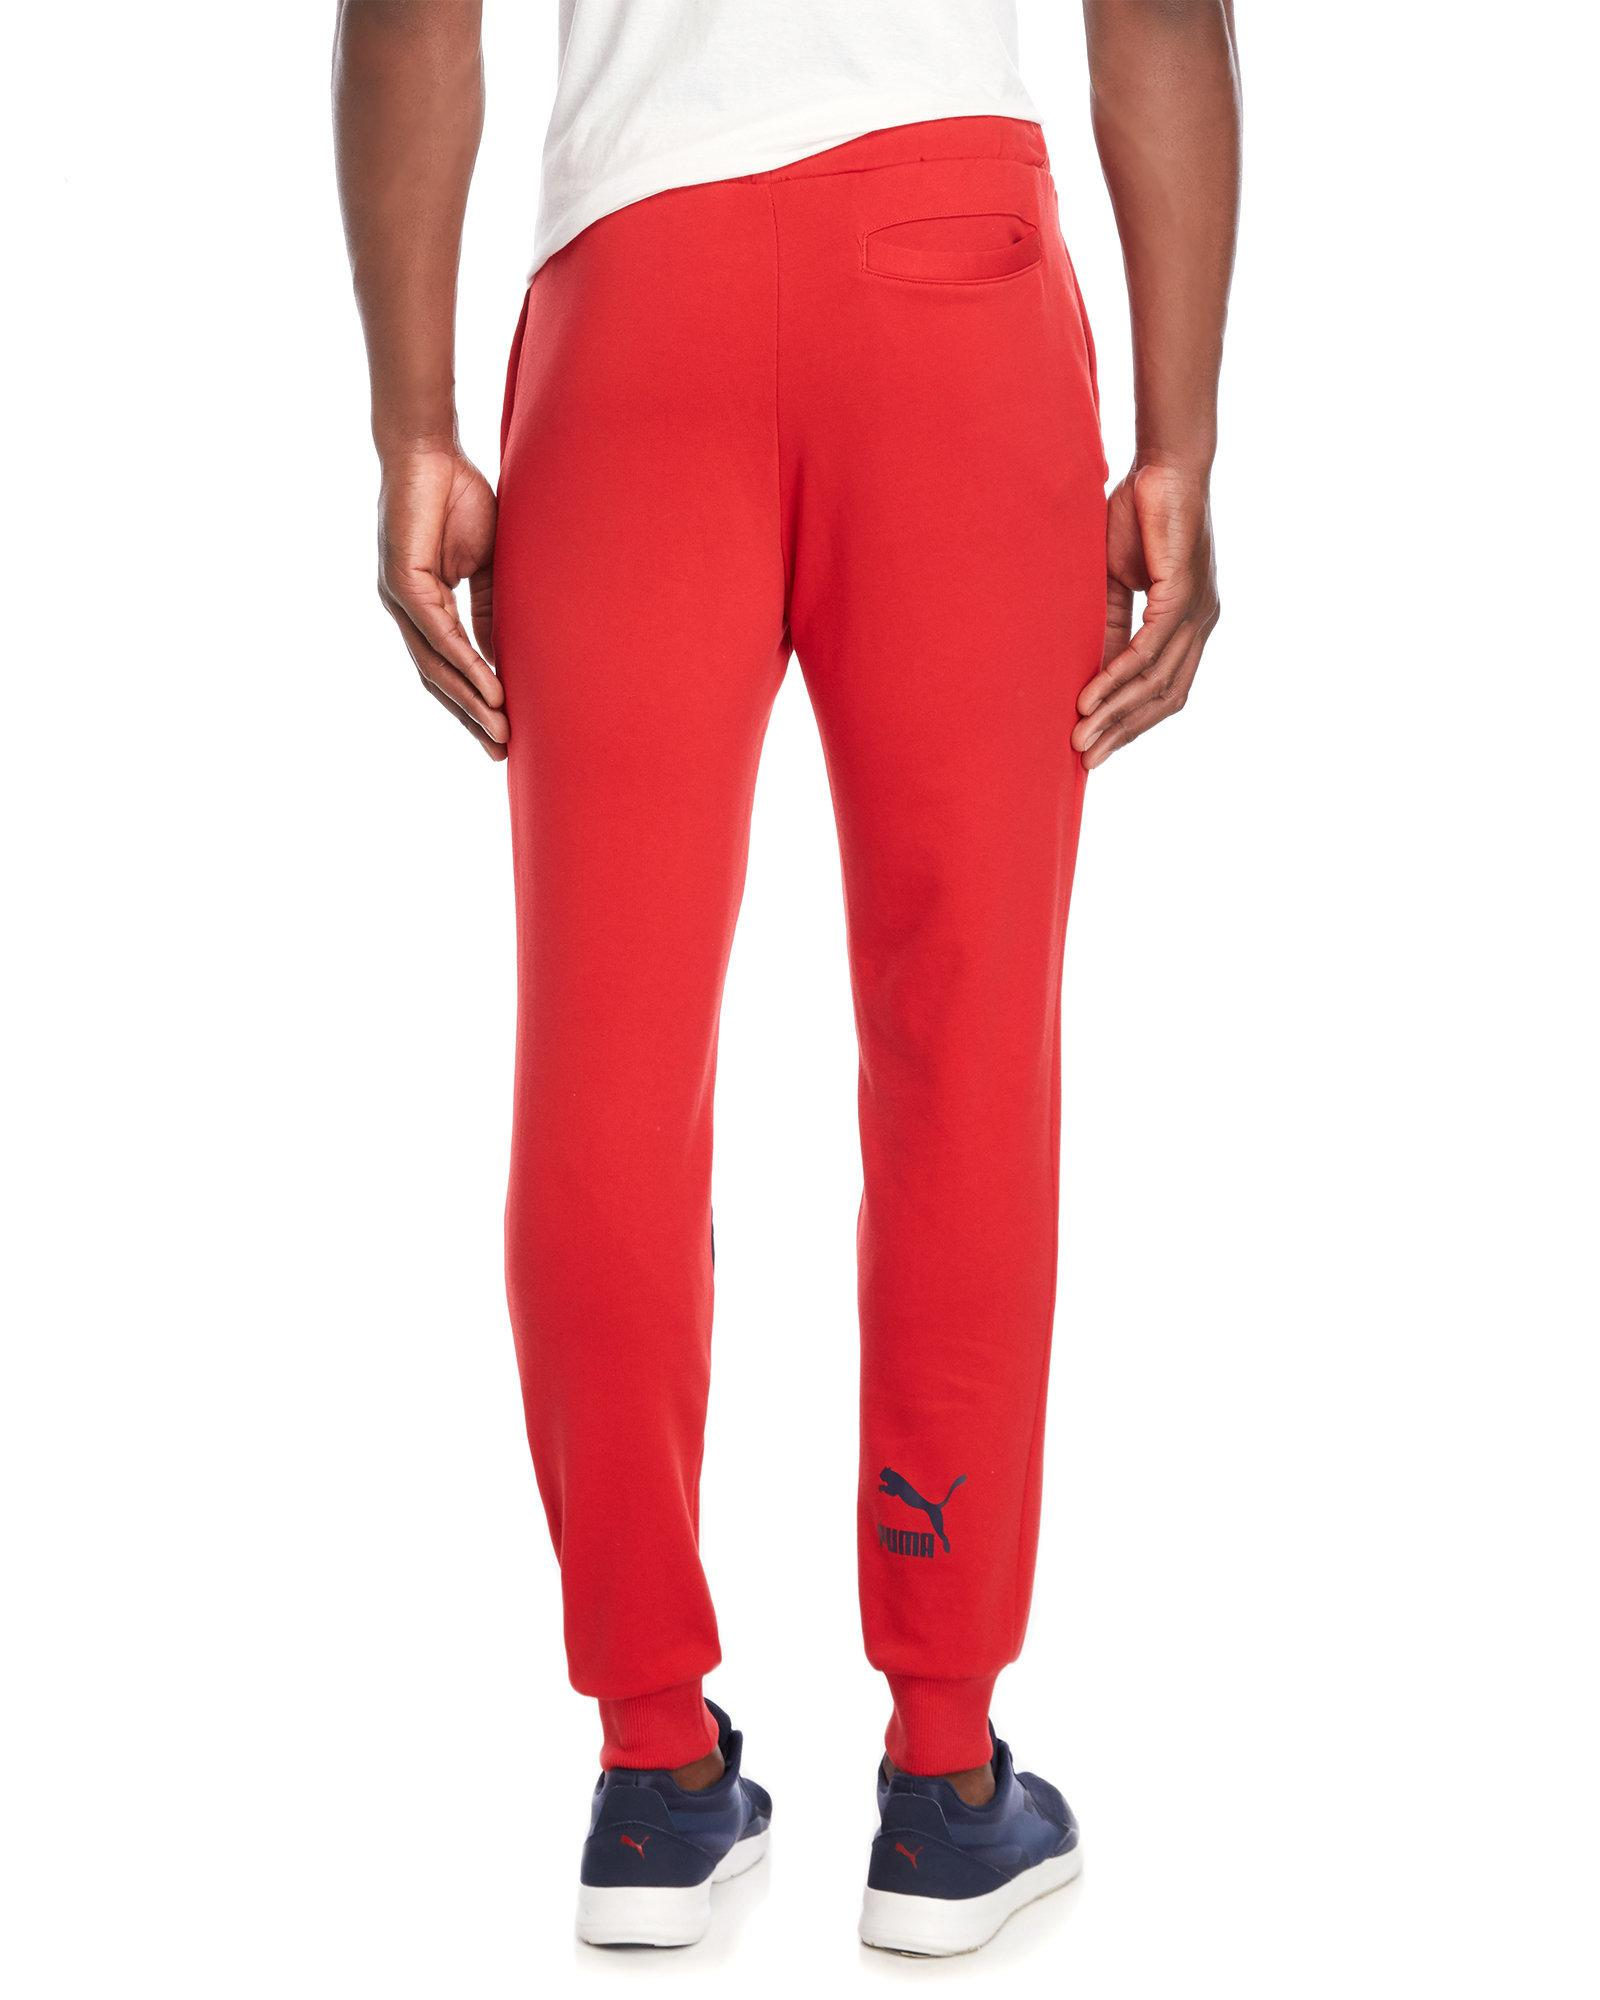 e0e0618c9c8 Lyst - PUMA Loud Pack Logo Sweatpants in Red for Men